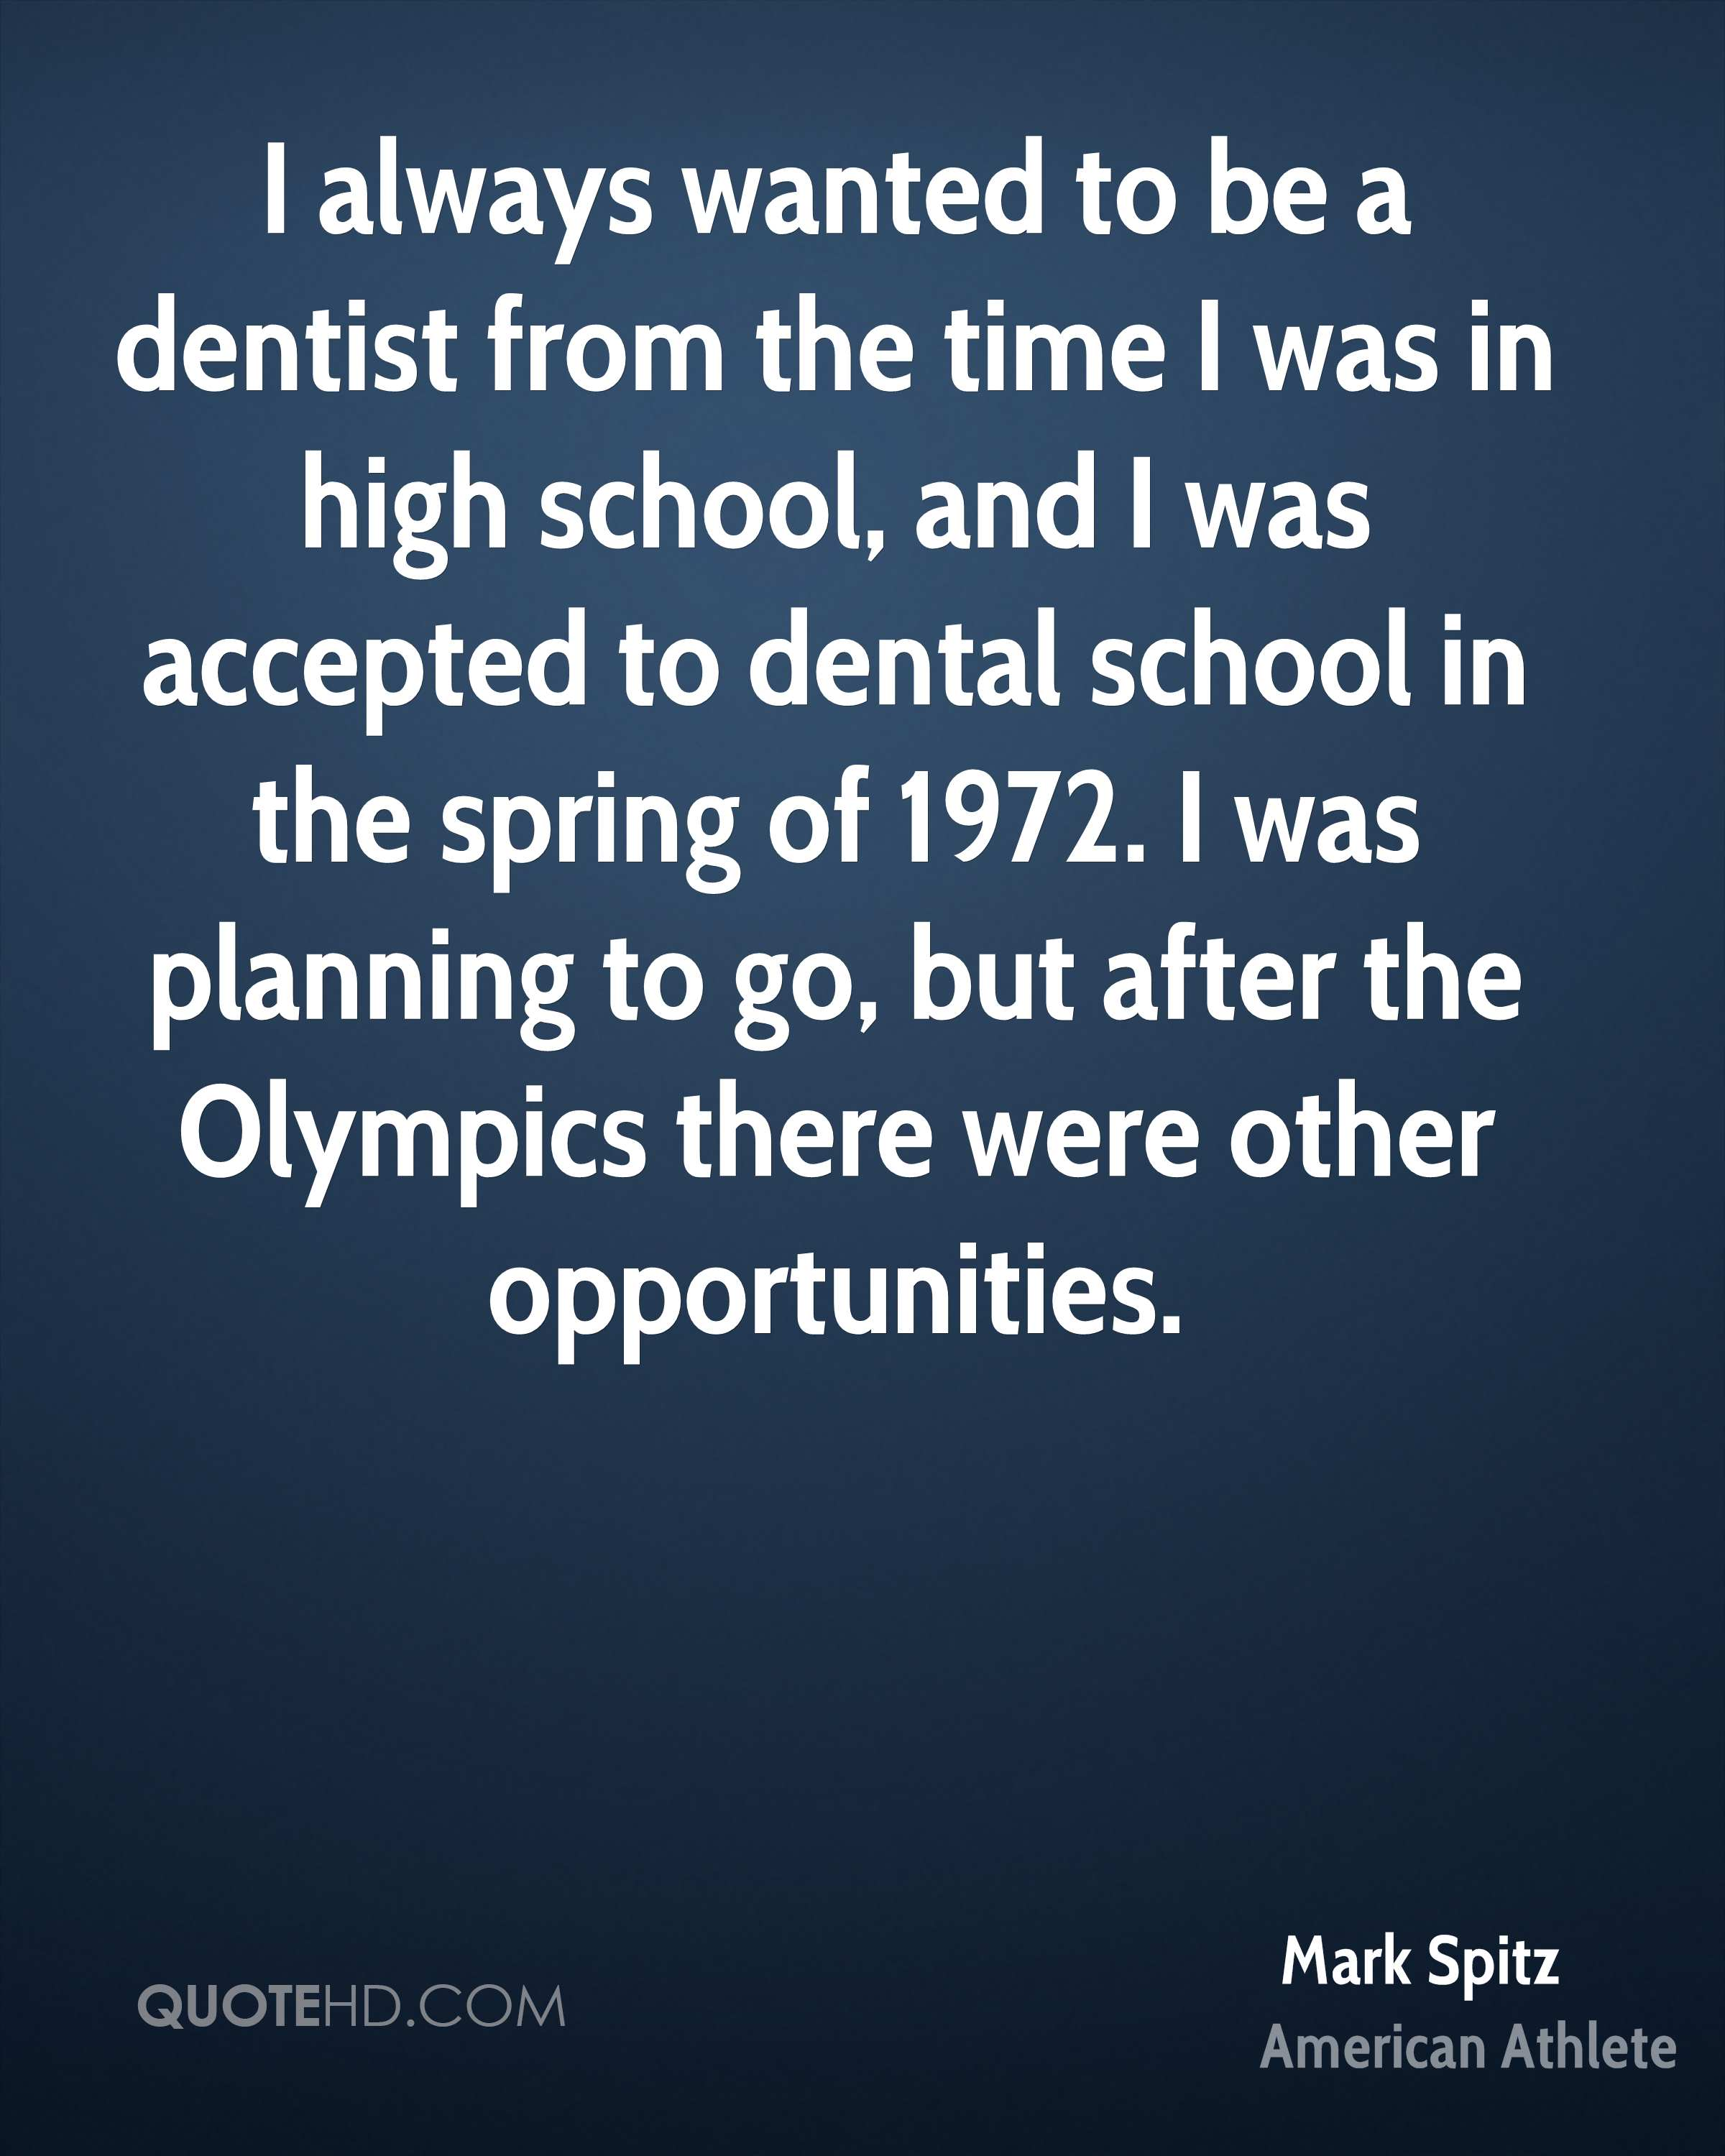 Dentist Quotes Mark Spitz Quotes  Quotehd